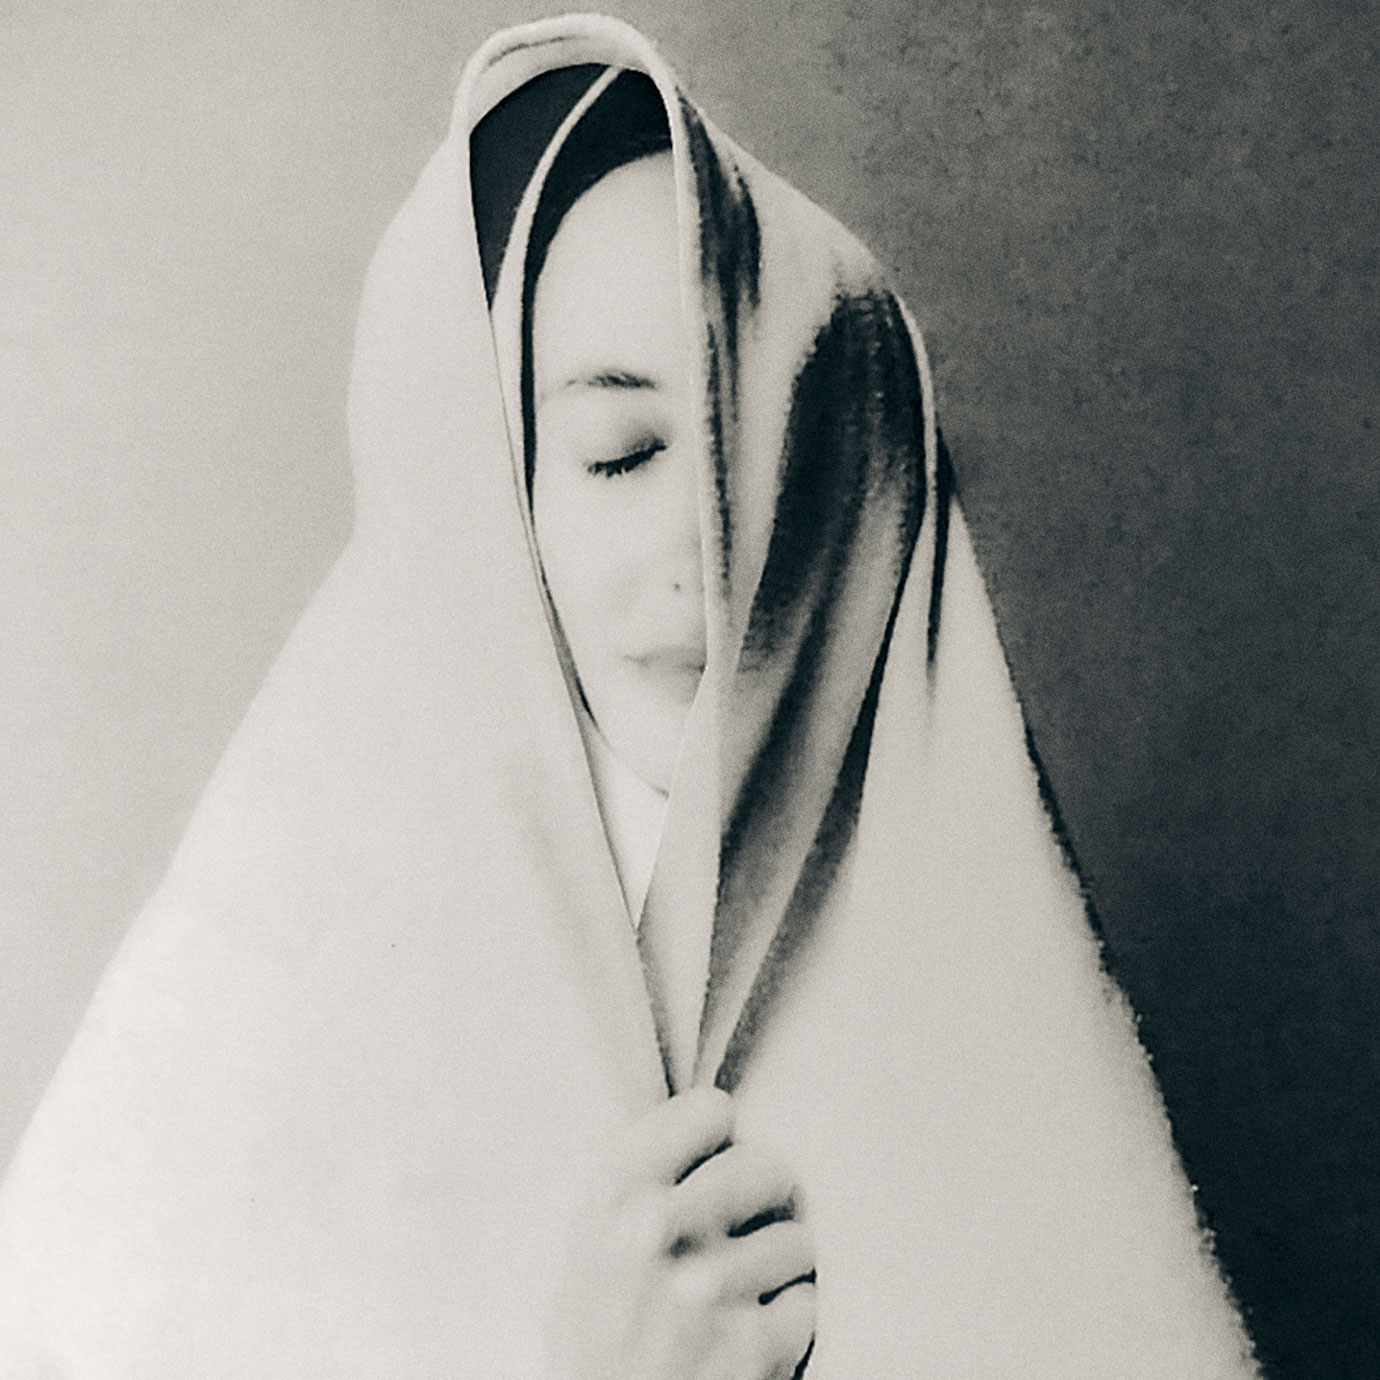 A woman wrapped in a white blanket.